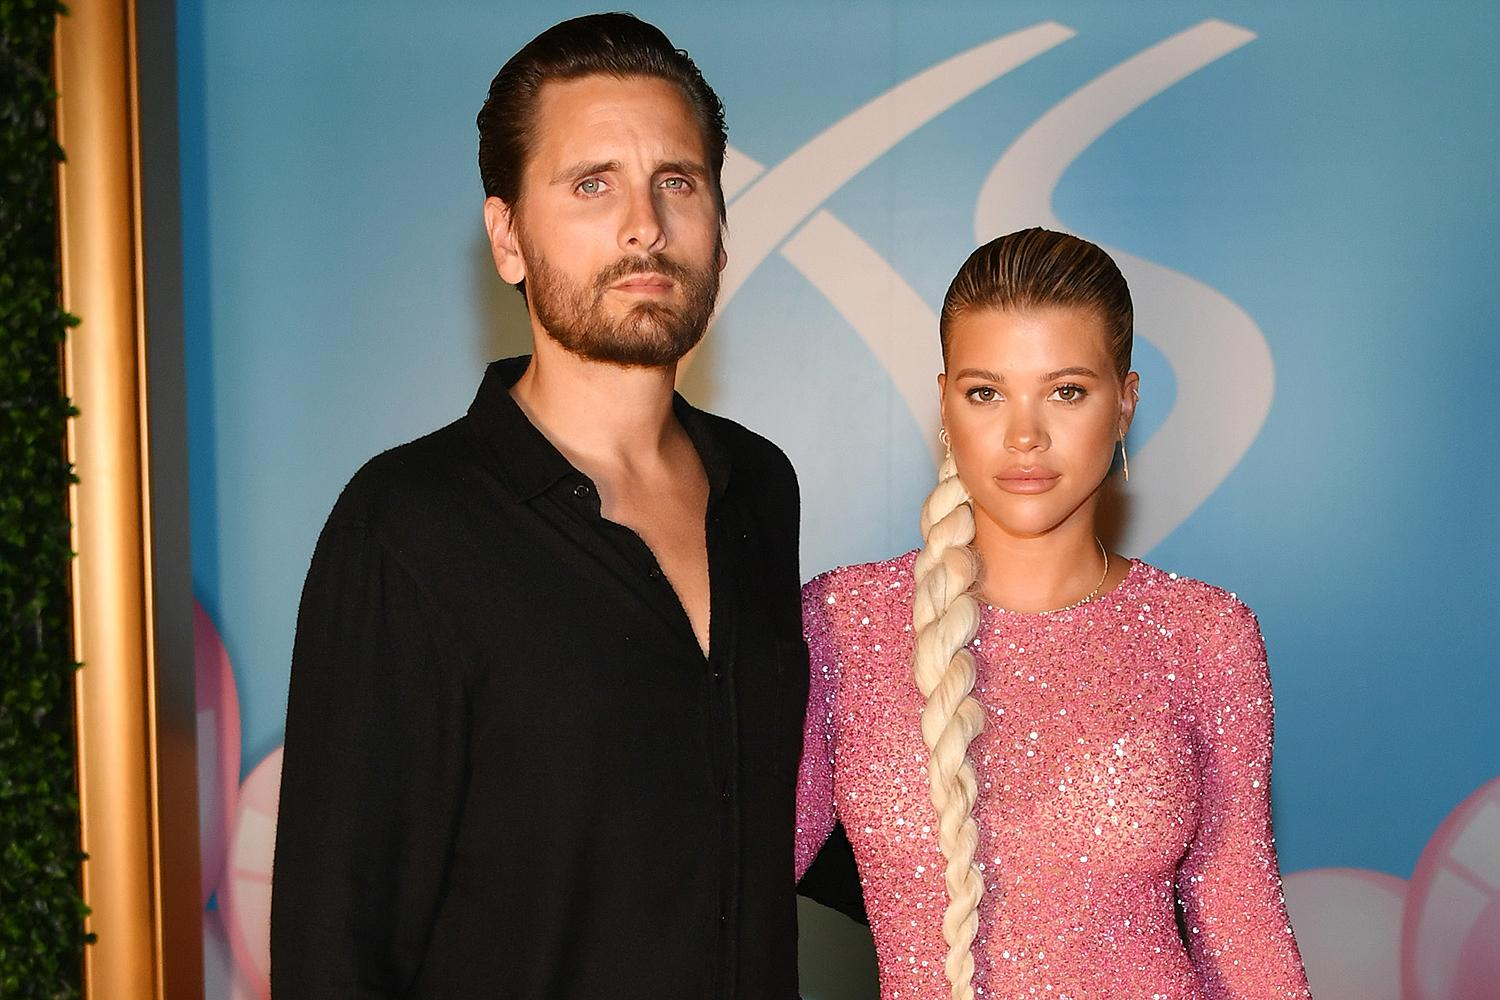 Scott Disick Regrets Taking Sofia Richie 'For Granted' - Isn't Doing Well Without Her, Source Says!